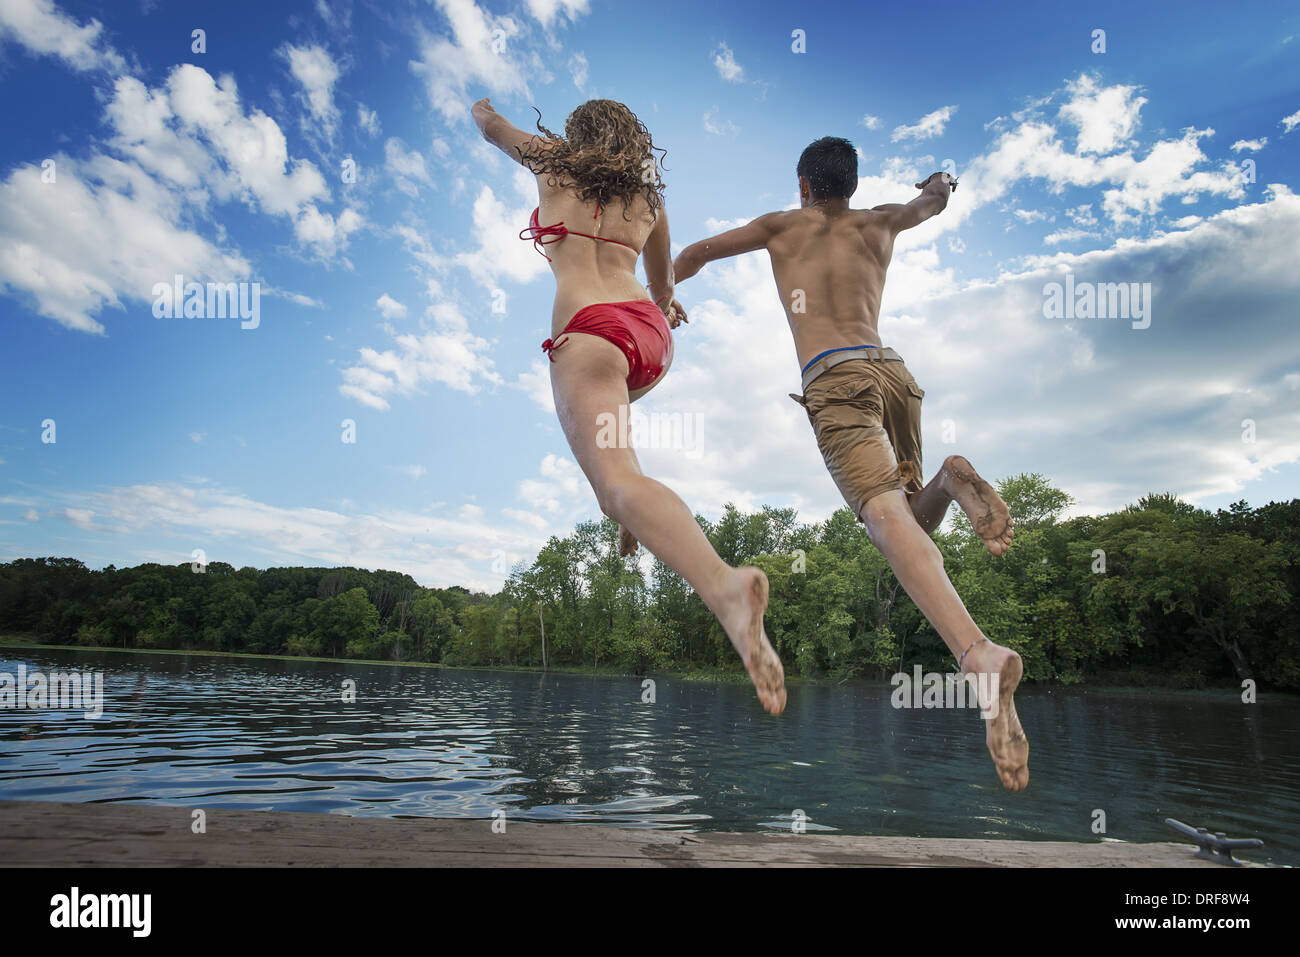 New York state USA boy and girl leaping off jetty into lake river Stock Photo